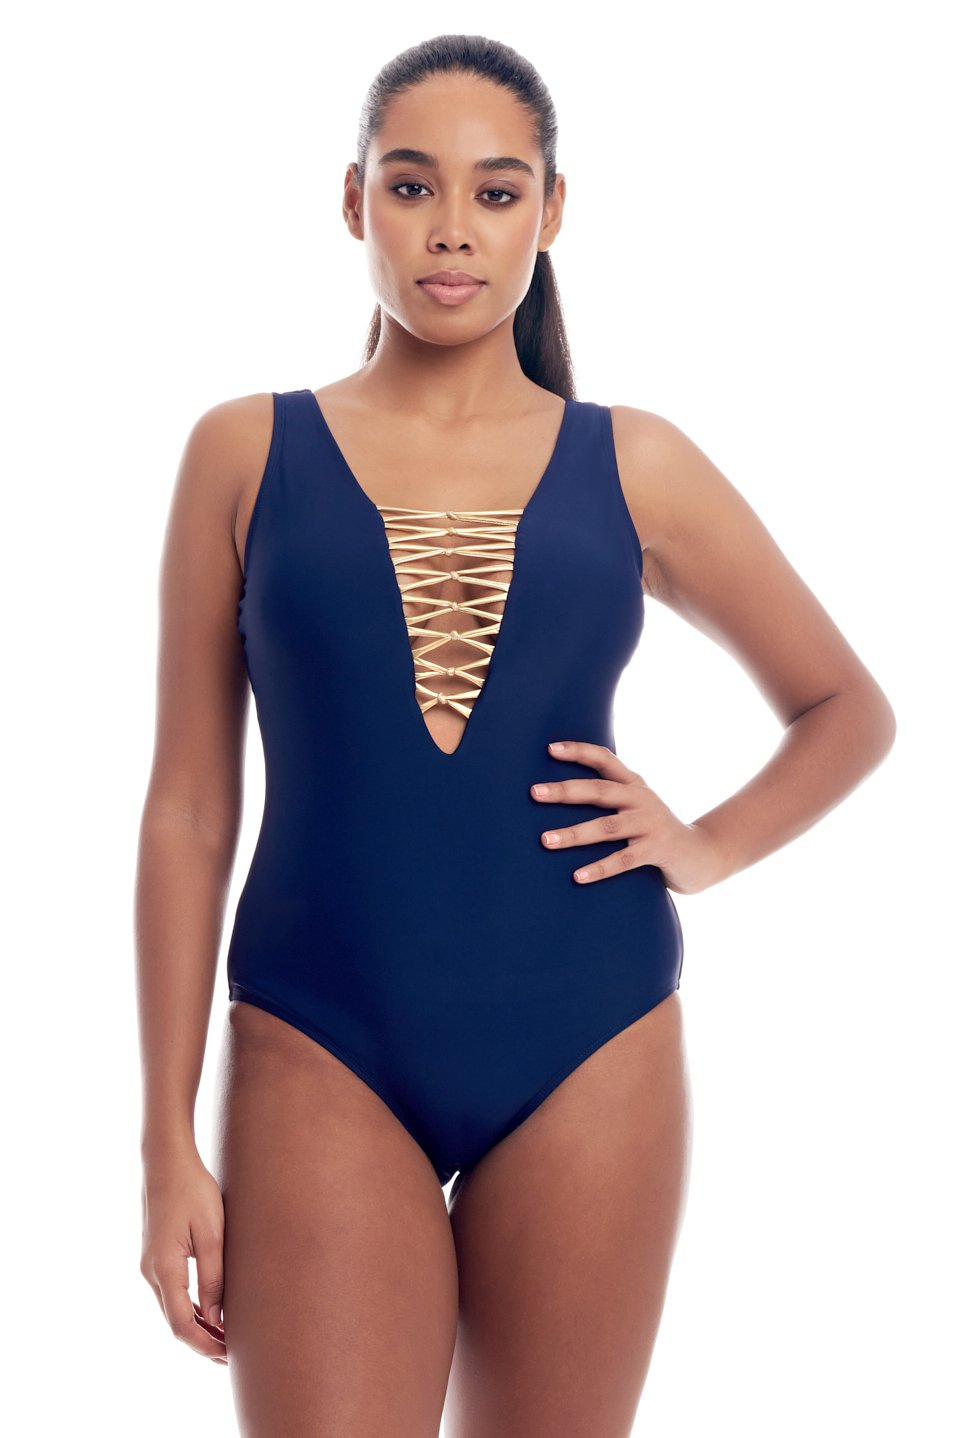 Bold & beautiful metallic front lace-up one-piece swimsuit for women in regular and plus size body shaping swimwear bathing suits in 4 colors by Cover Girl Swim